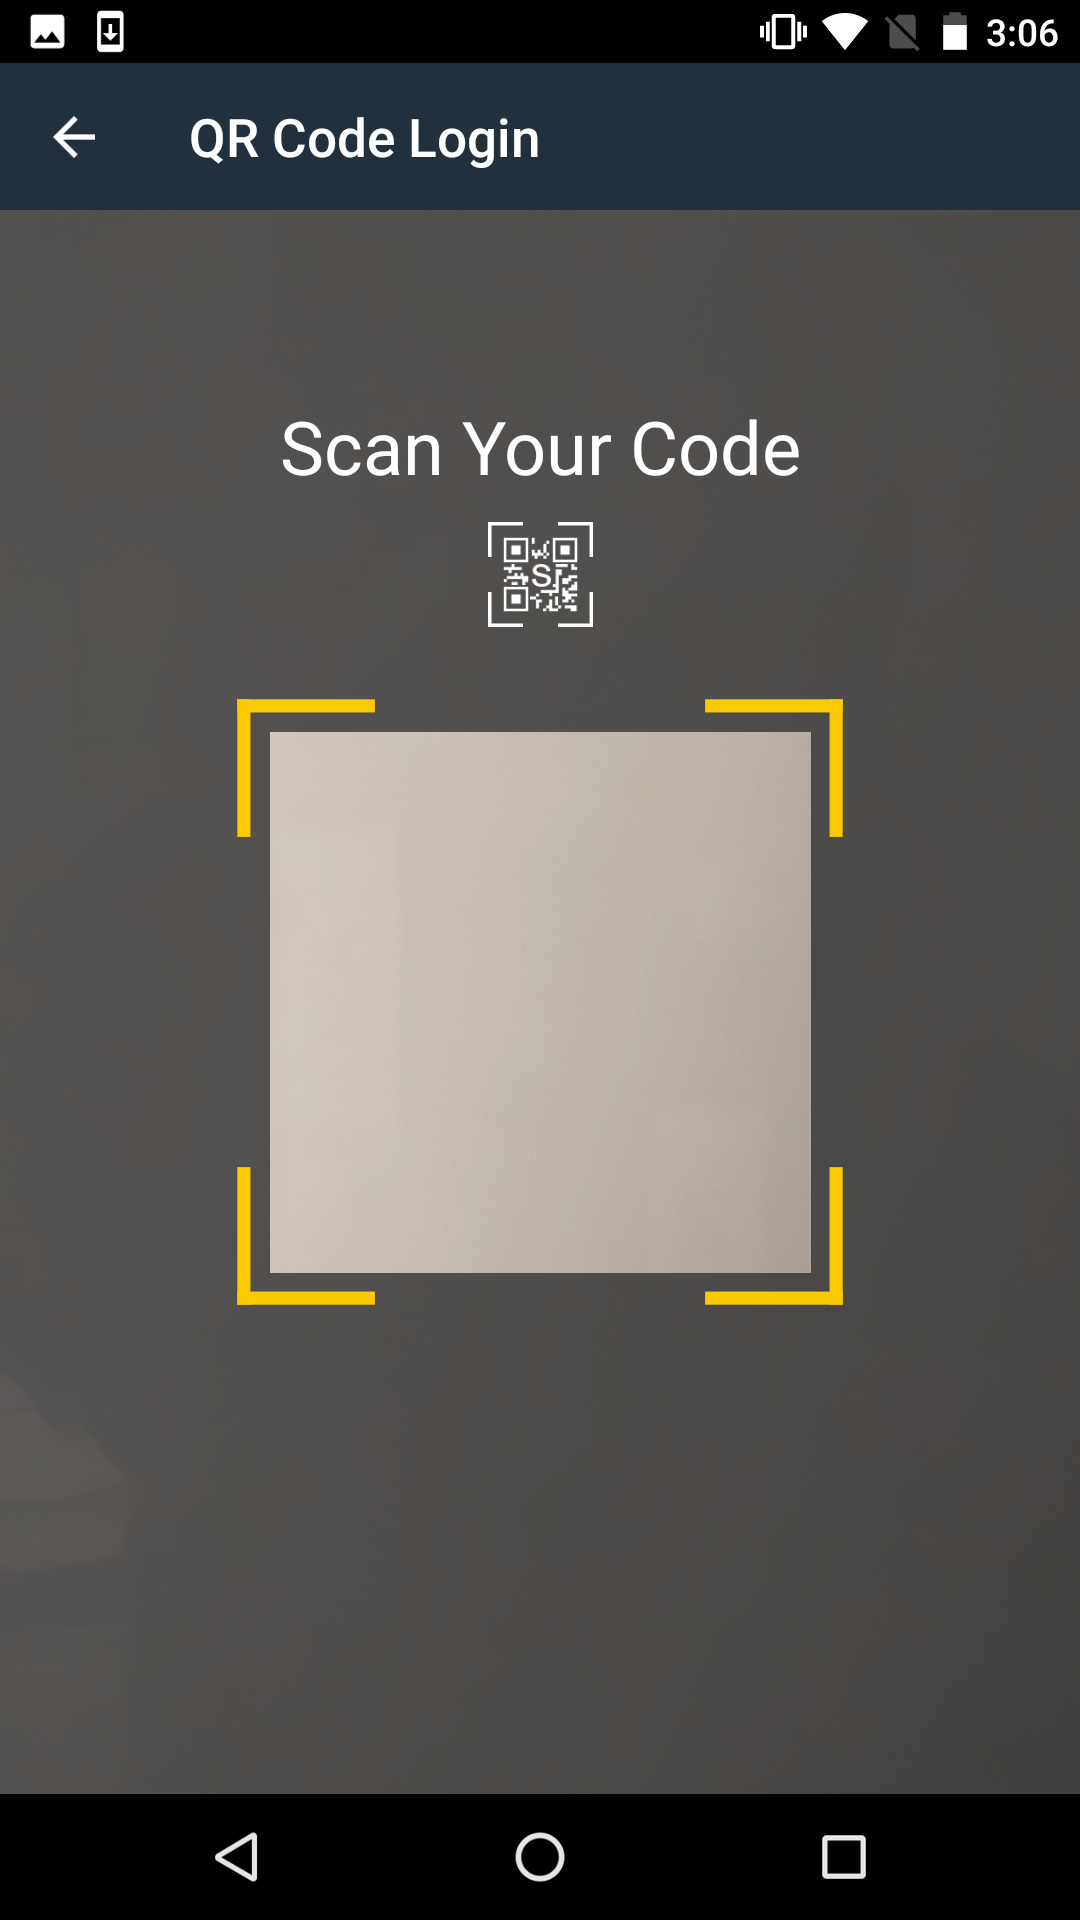 Scan_your_code_Android.png